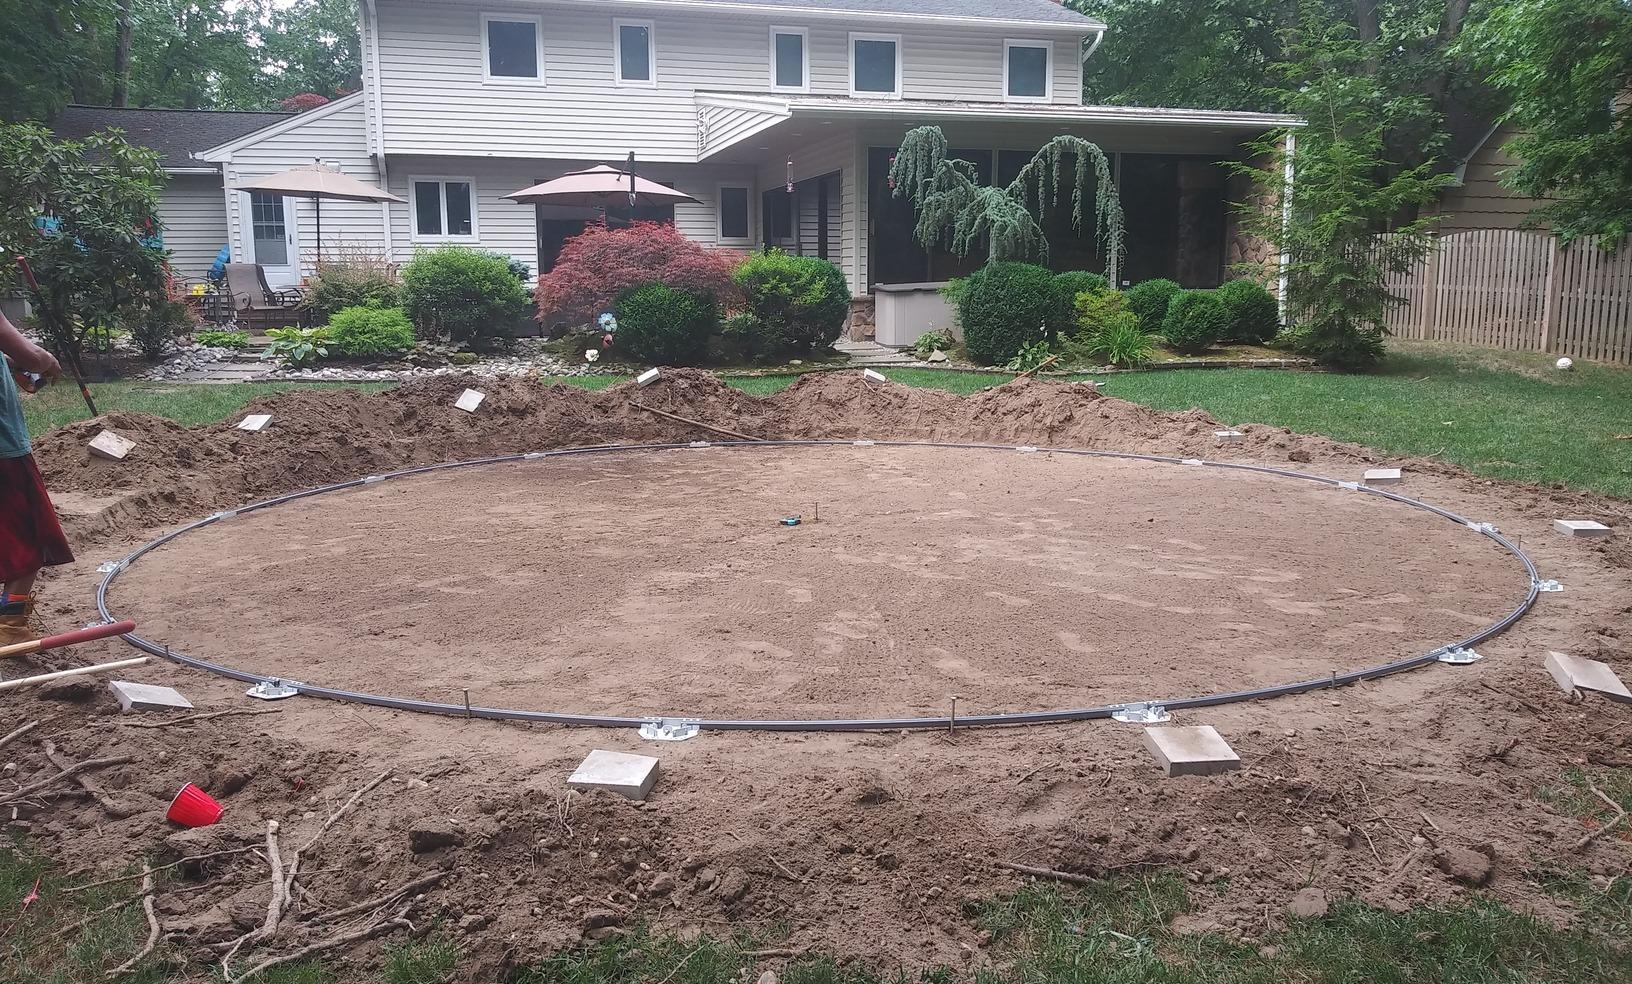 Above Ground Pool Installation in East Brunswick, NJ Backyard - Before Photo